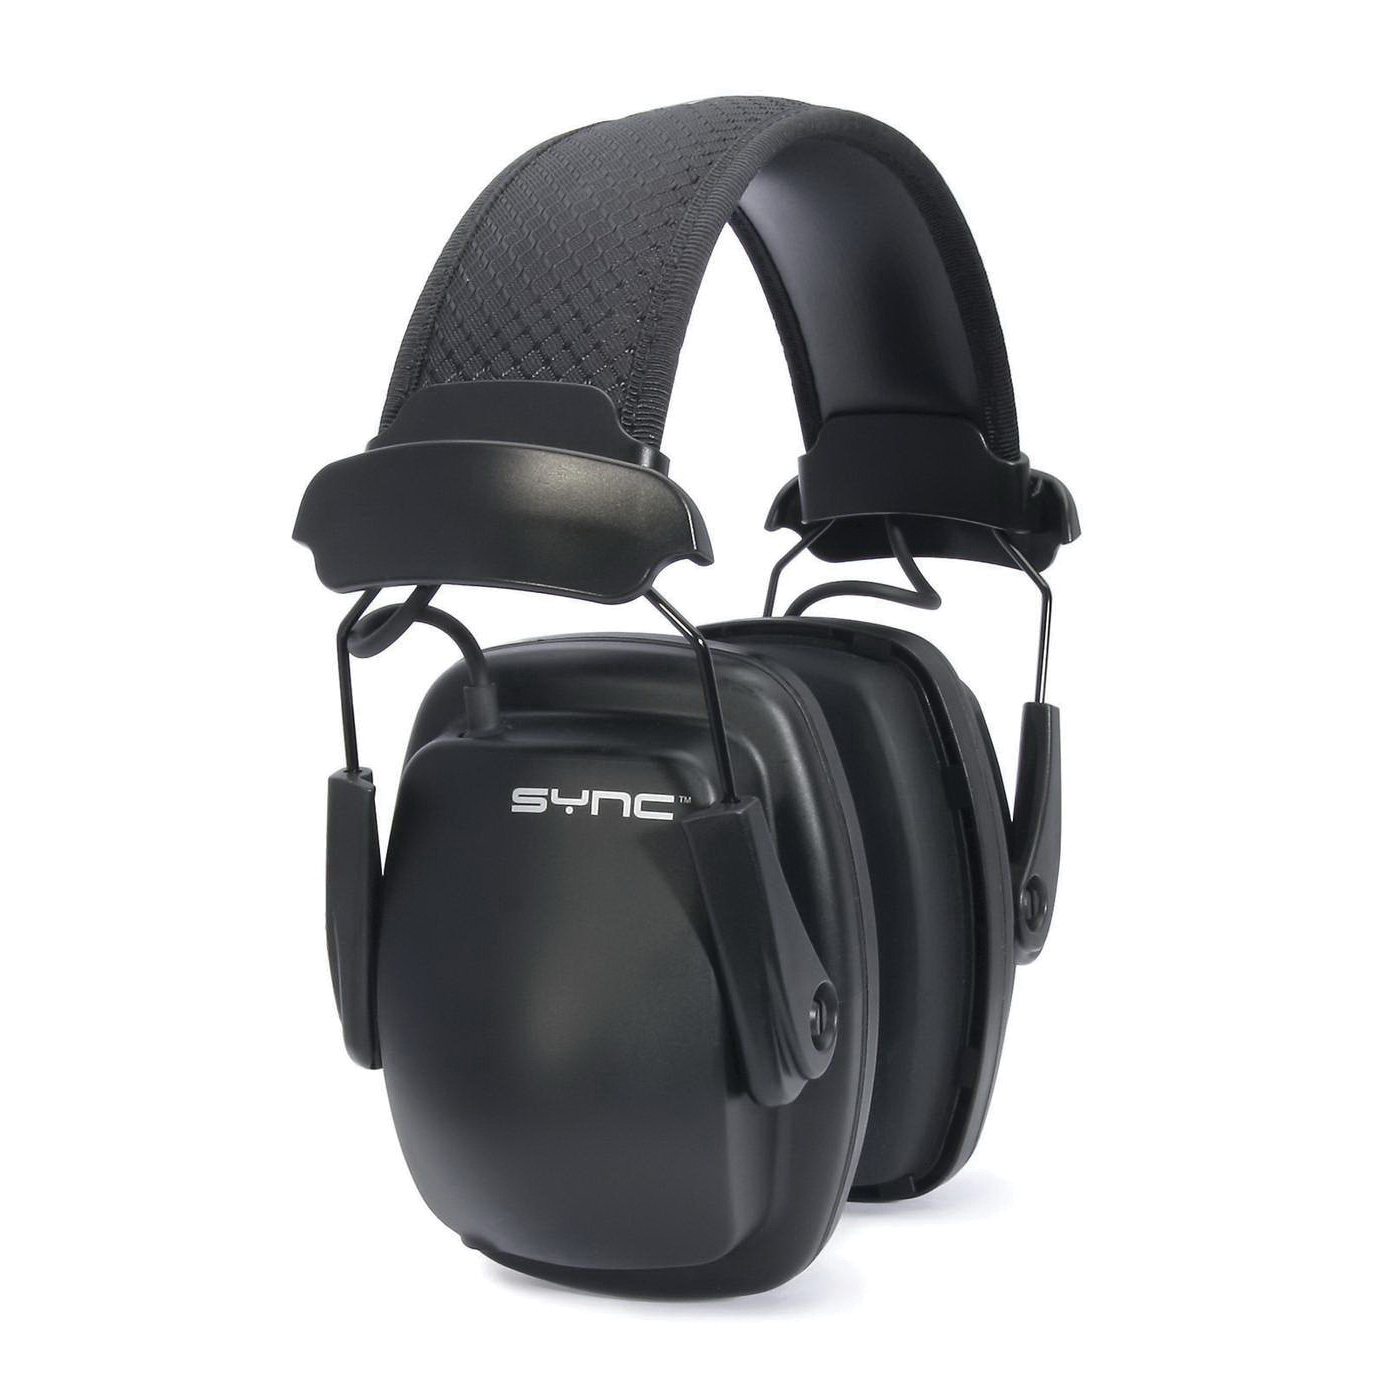 Howard Leight by Honeywell 1030110 Sync Noise Blocking Stereo Earmuffs, 25 dB Noise Reduction, Black, Over The Head Band Position, OSHA Approved, EN 352-1, 352-4, EN 352-6, 89/686/EEC